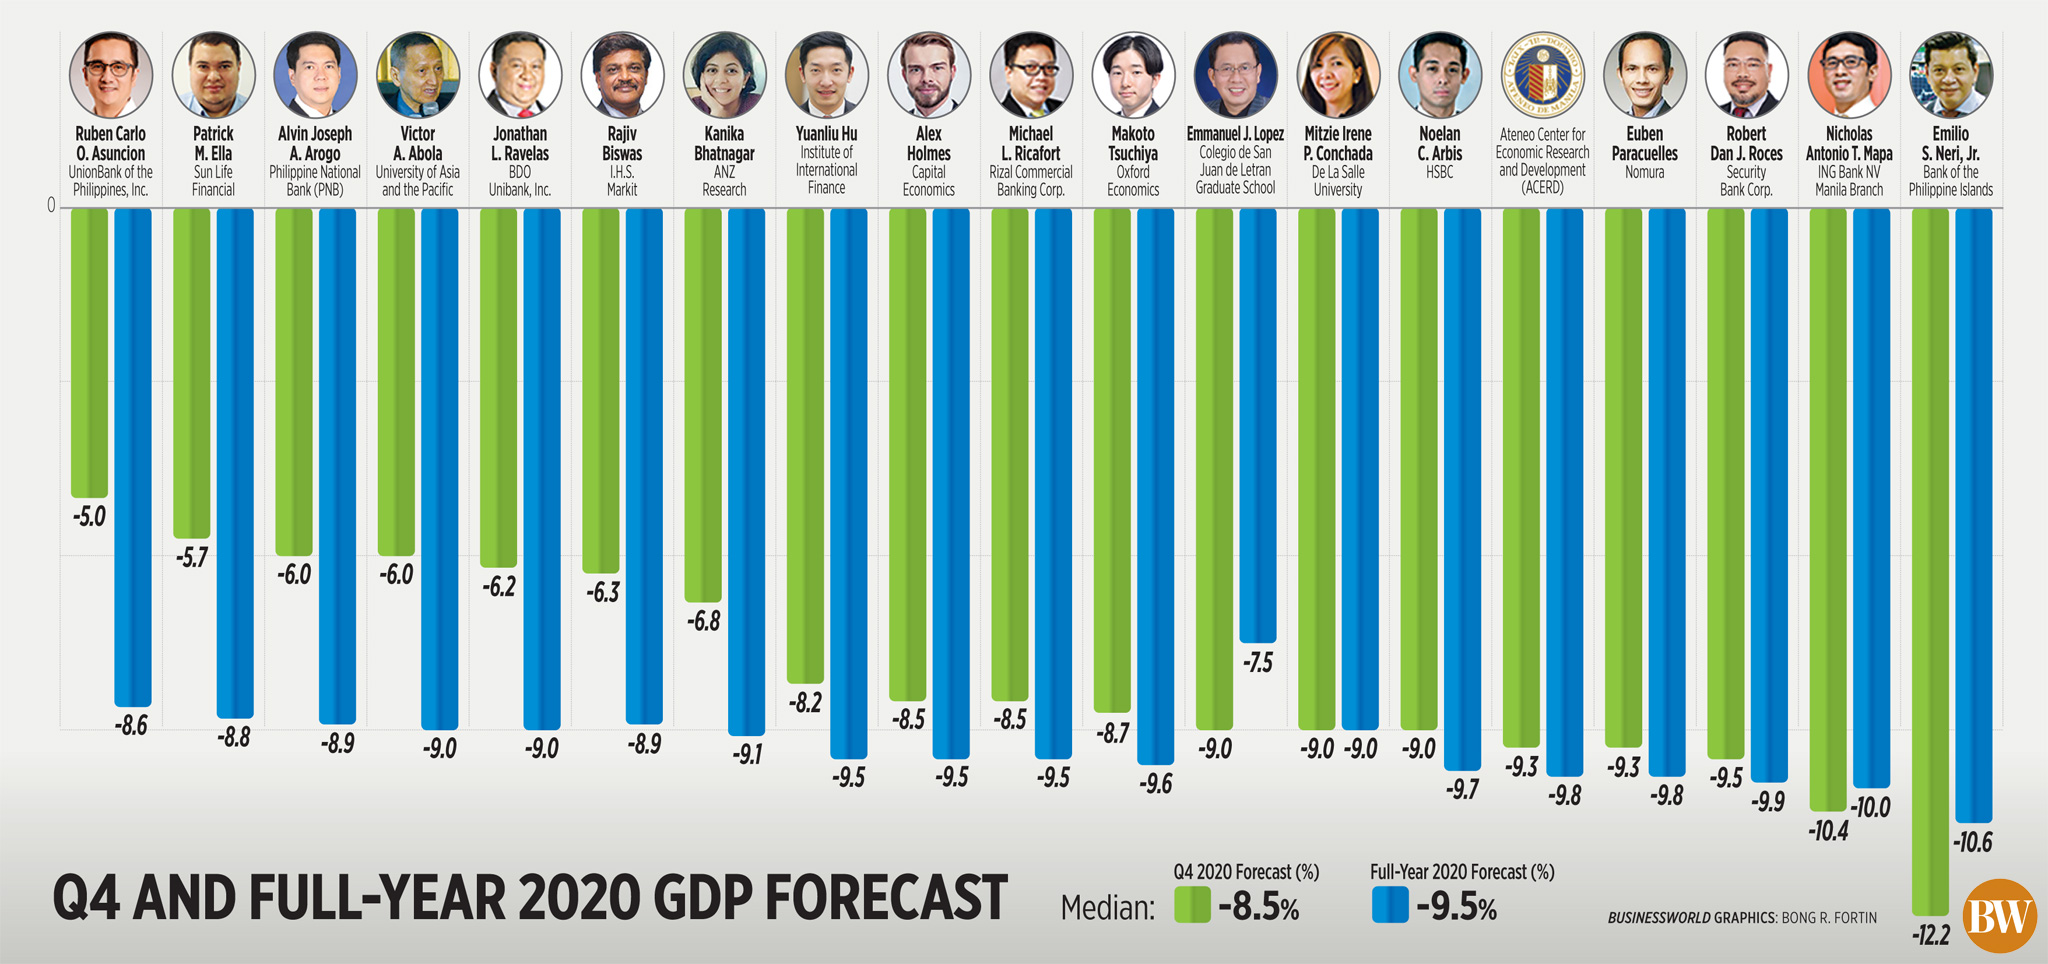 Q4 and full-year 2020 GDP forecast